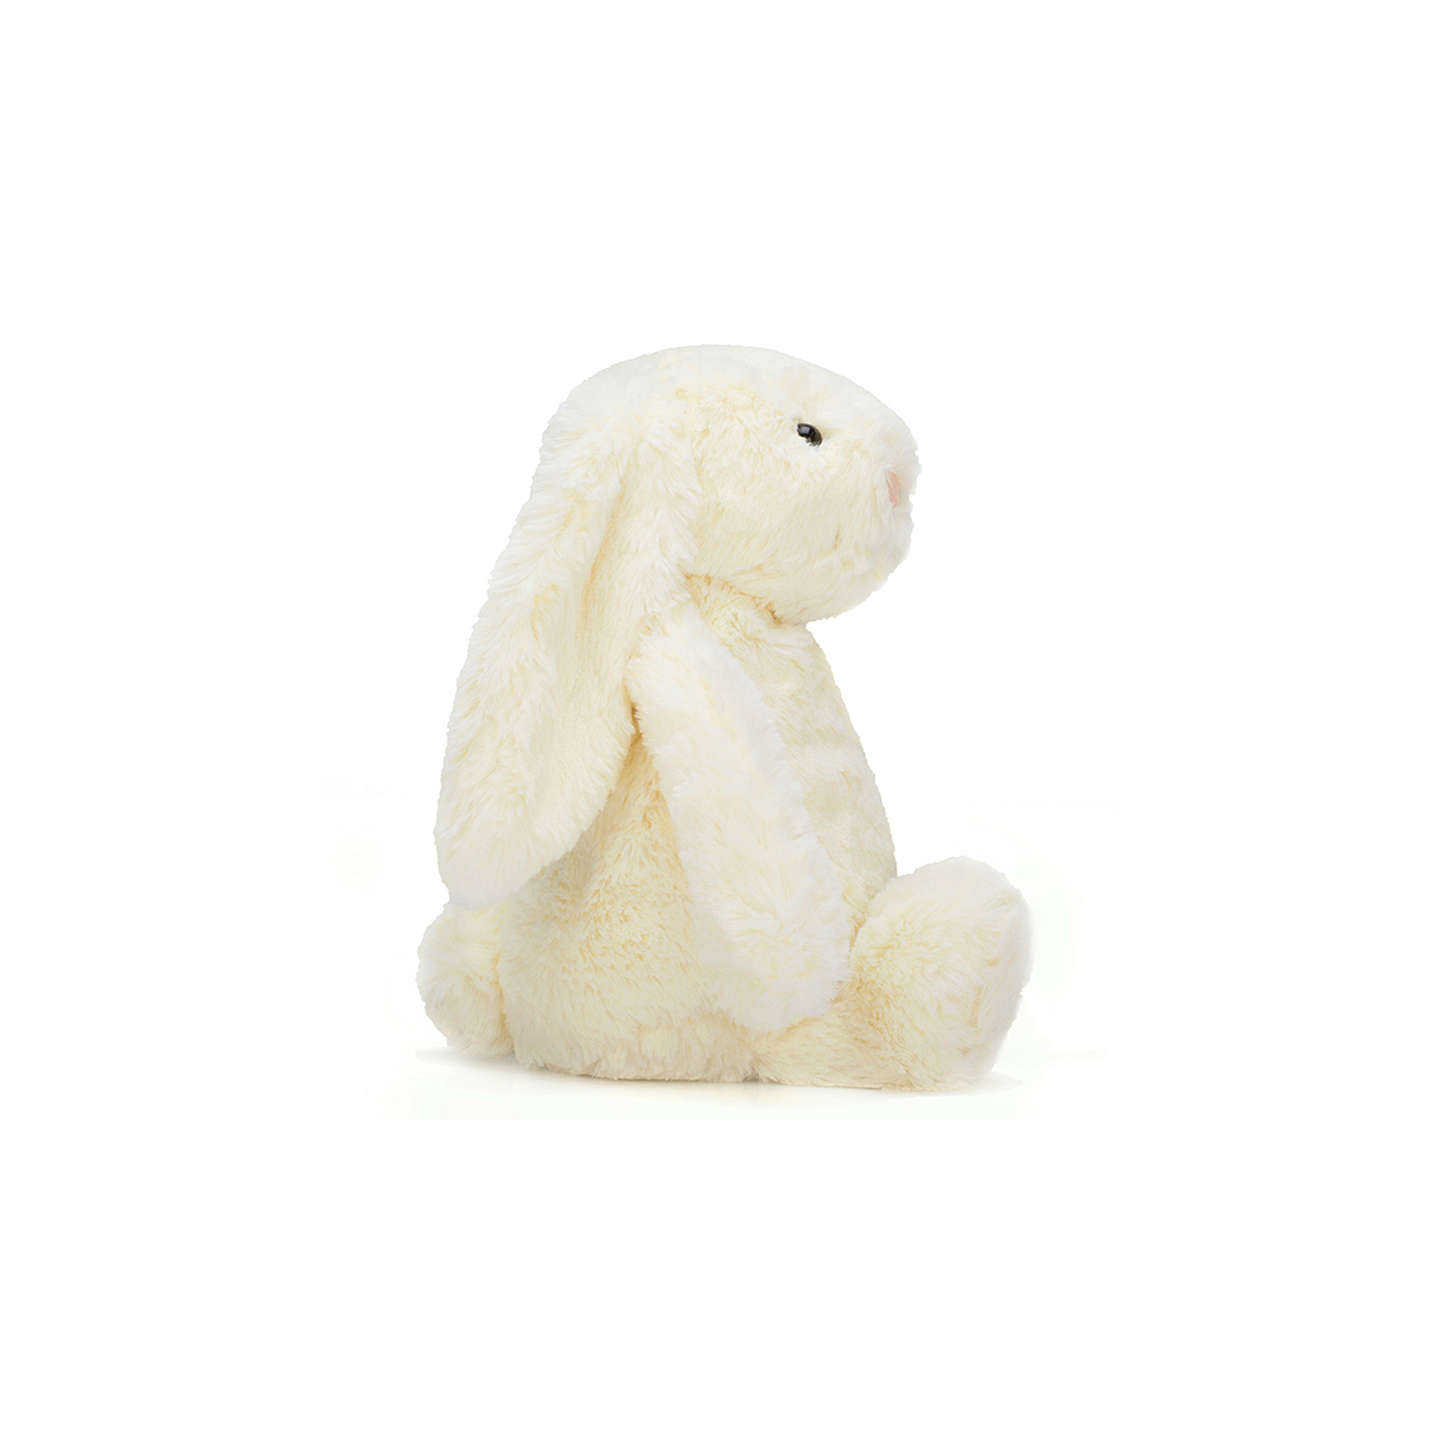 BuyJellycat Bashful Bunny Soft Toy, Medium, Cream Online at johnlewis.com